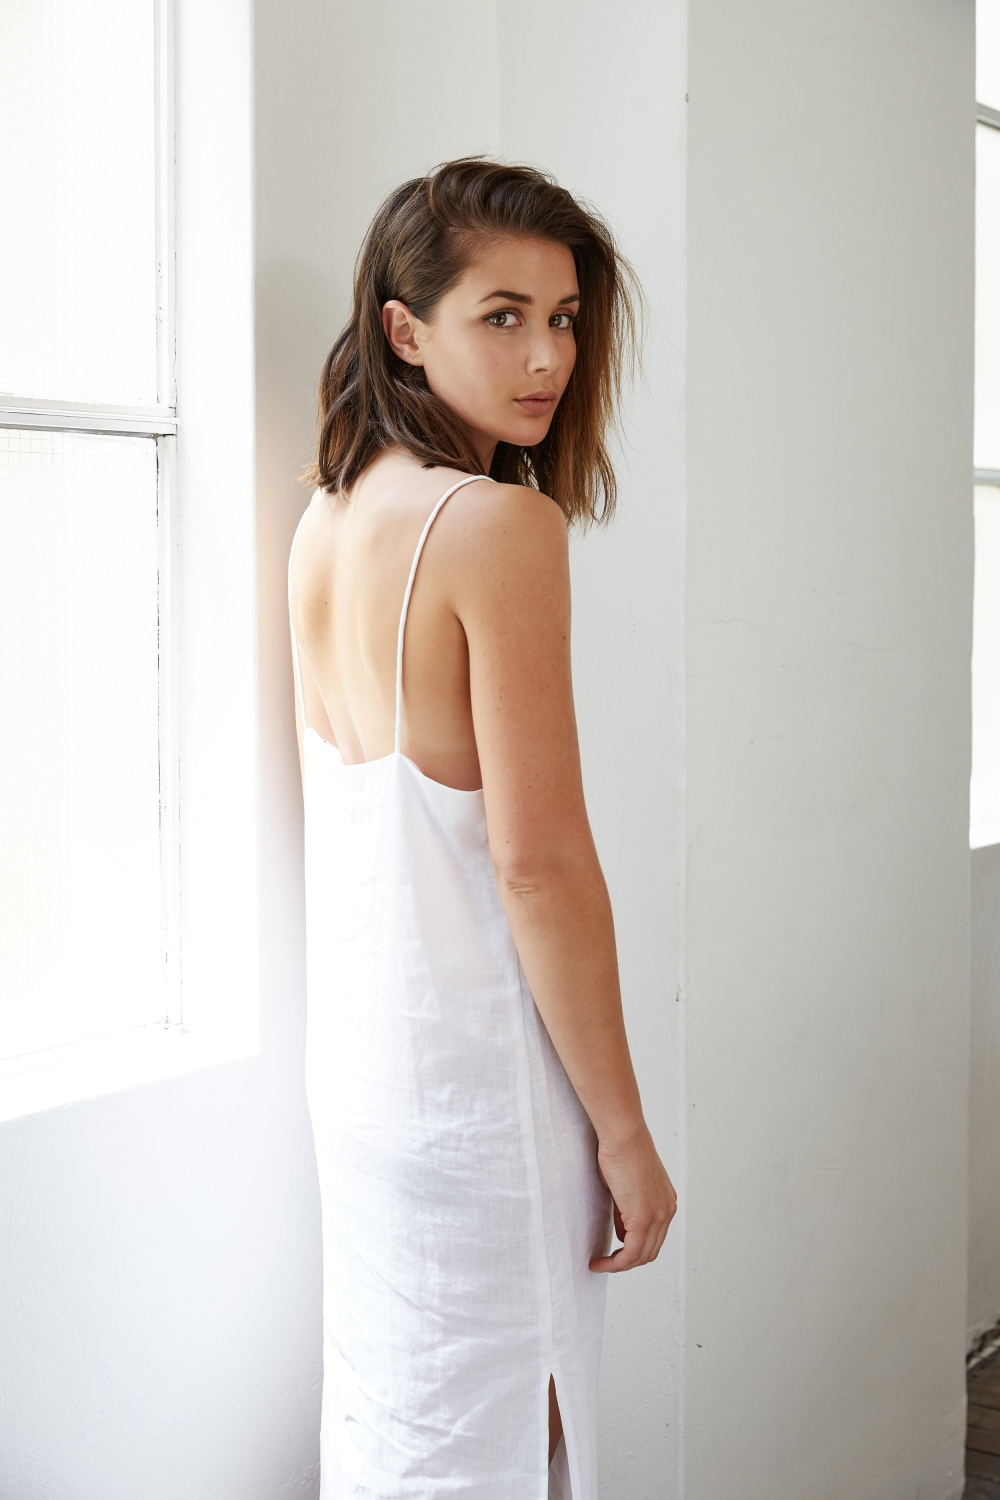 Harper and Harely Australian Blogger Sara Donaldson wears all white in latest Editorial